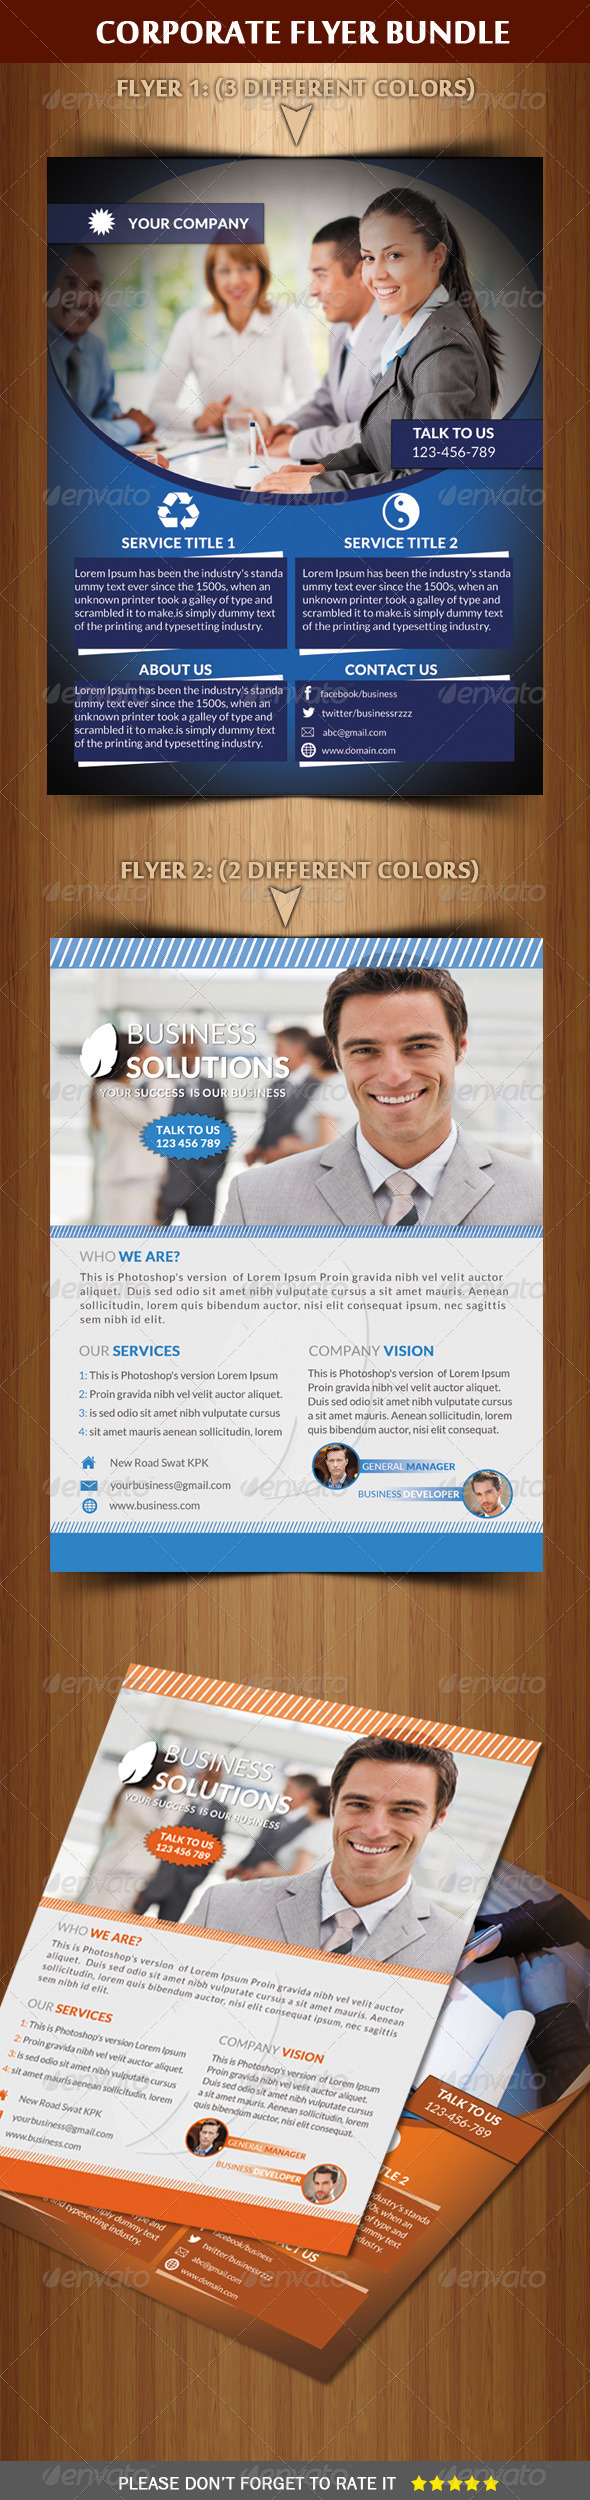 GraphicRiver Corporate Flyer Bundle 6568503